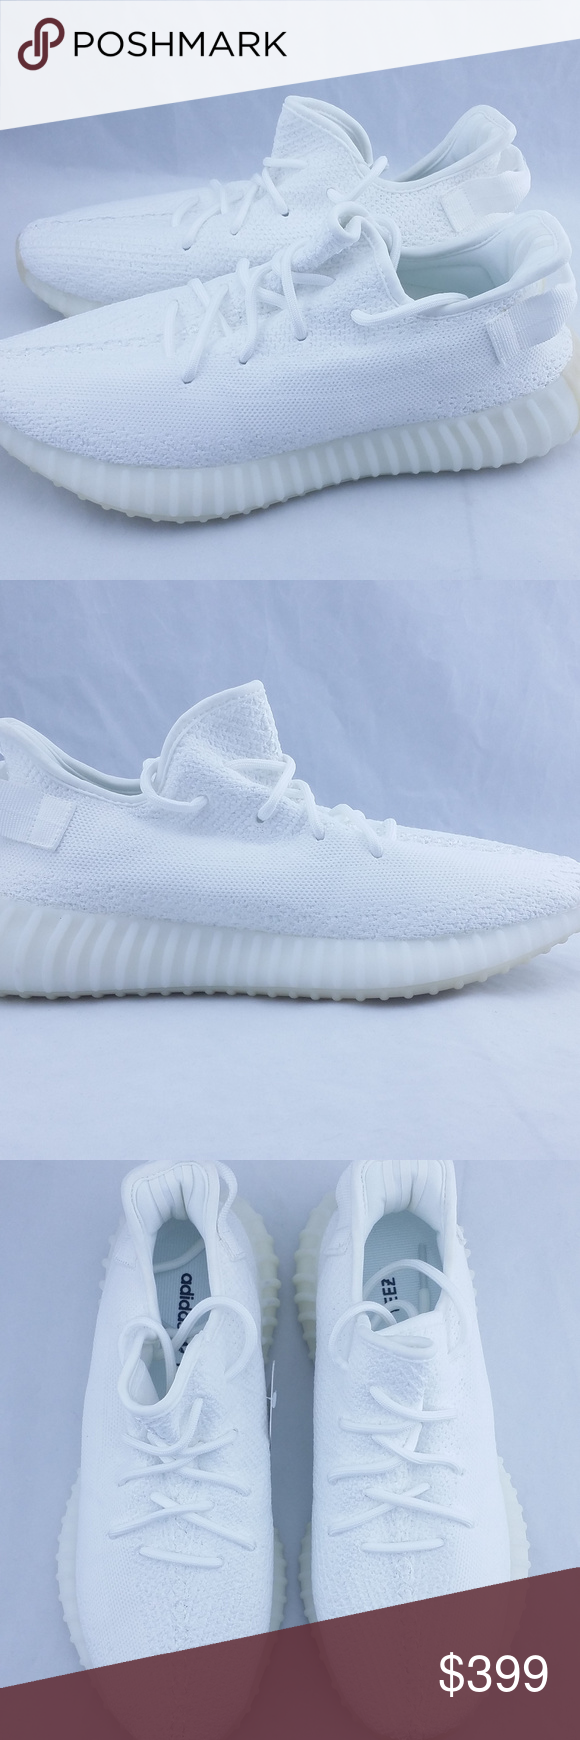 innovative design b8b81 0315e Adidas Yeezy Boost 350 V2 Cream White Size 10 Adidas Yeezy 350 V2 Boost  Kanye West Core Color  Cream White Men s Size 10 Brand new without Box adidas  Shoes ...